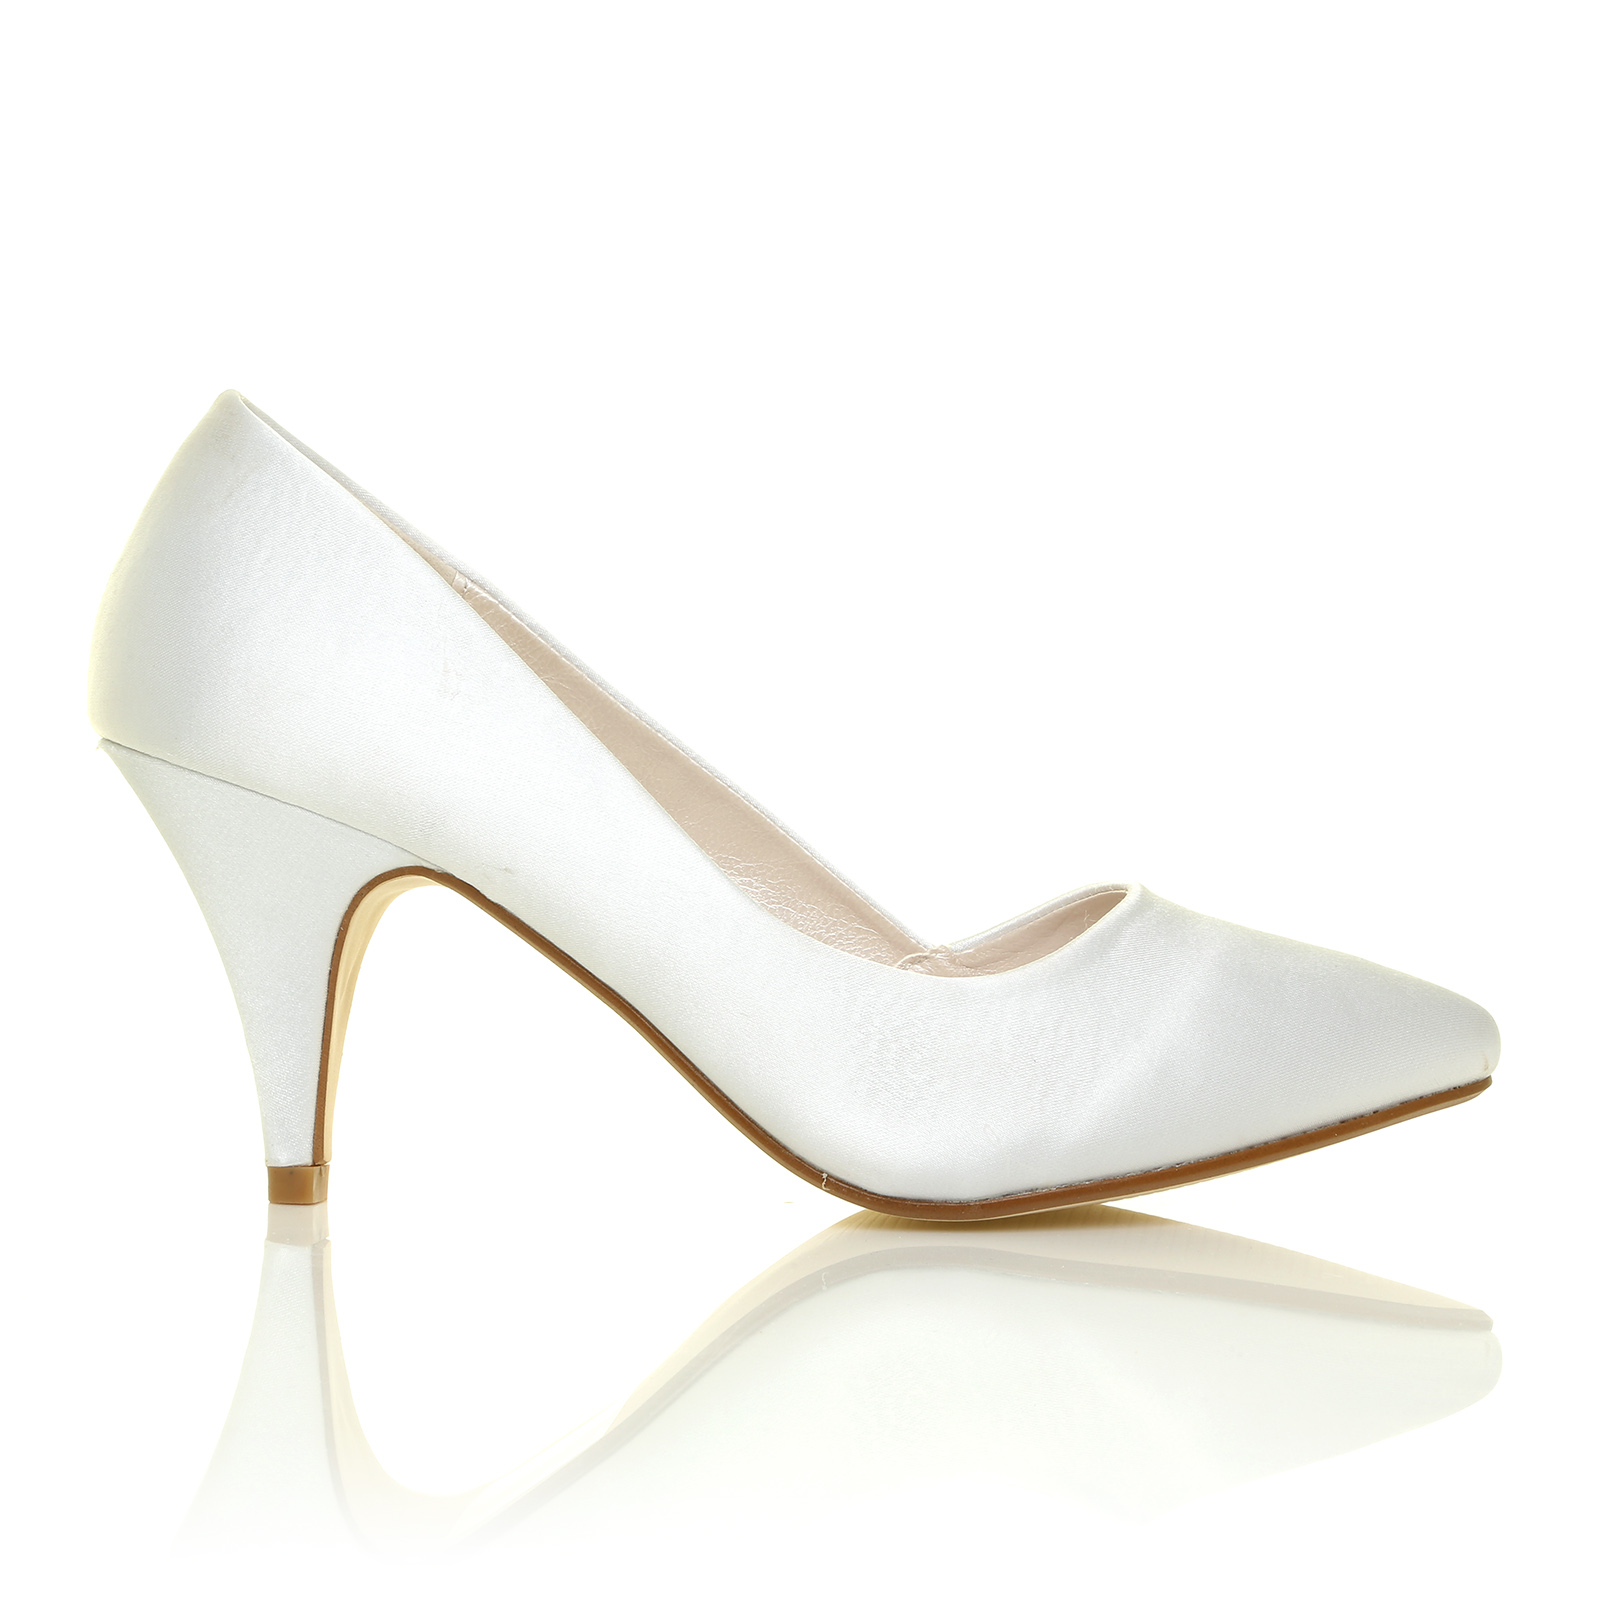 new womens ivory white satin mid heel bridal wedding